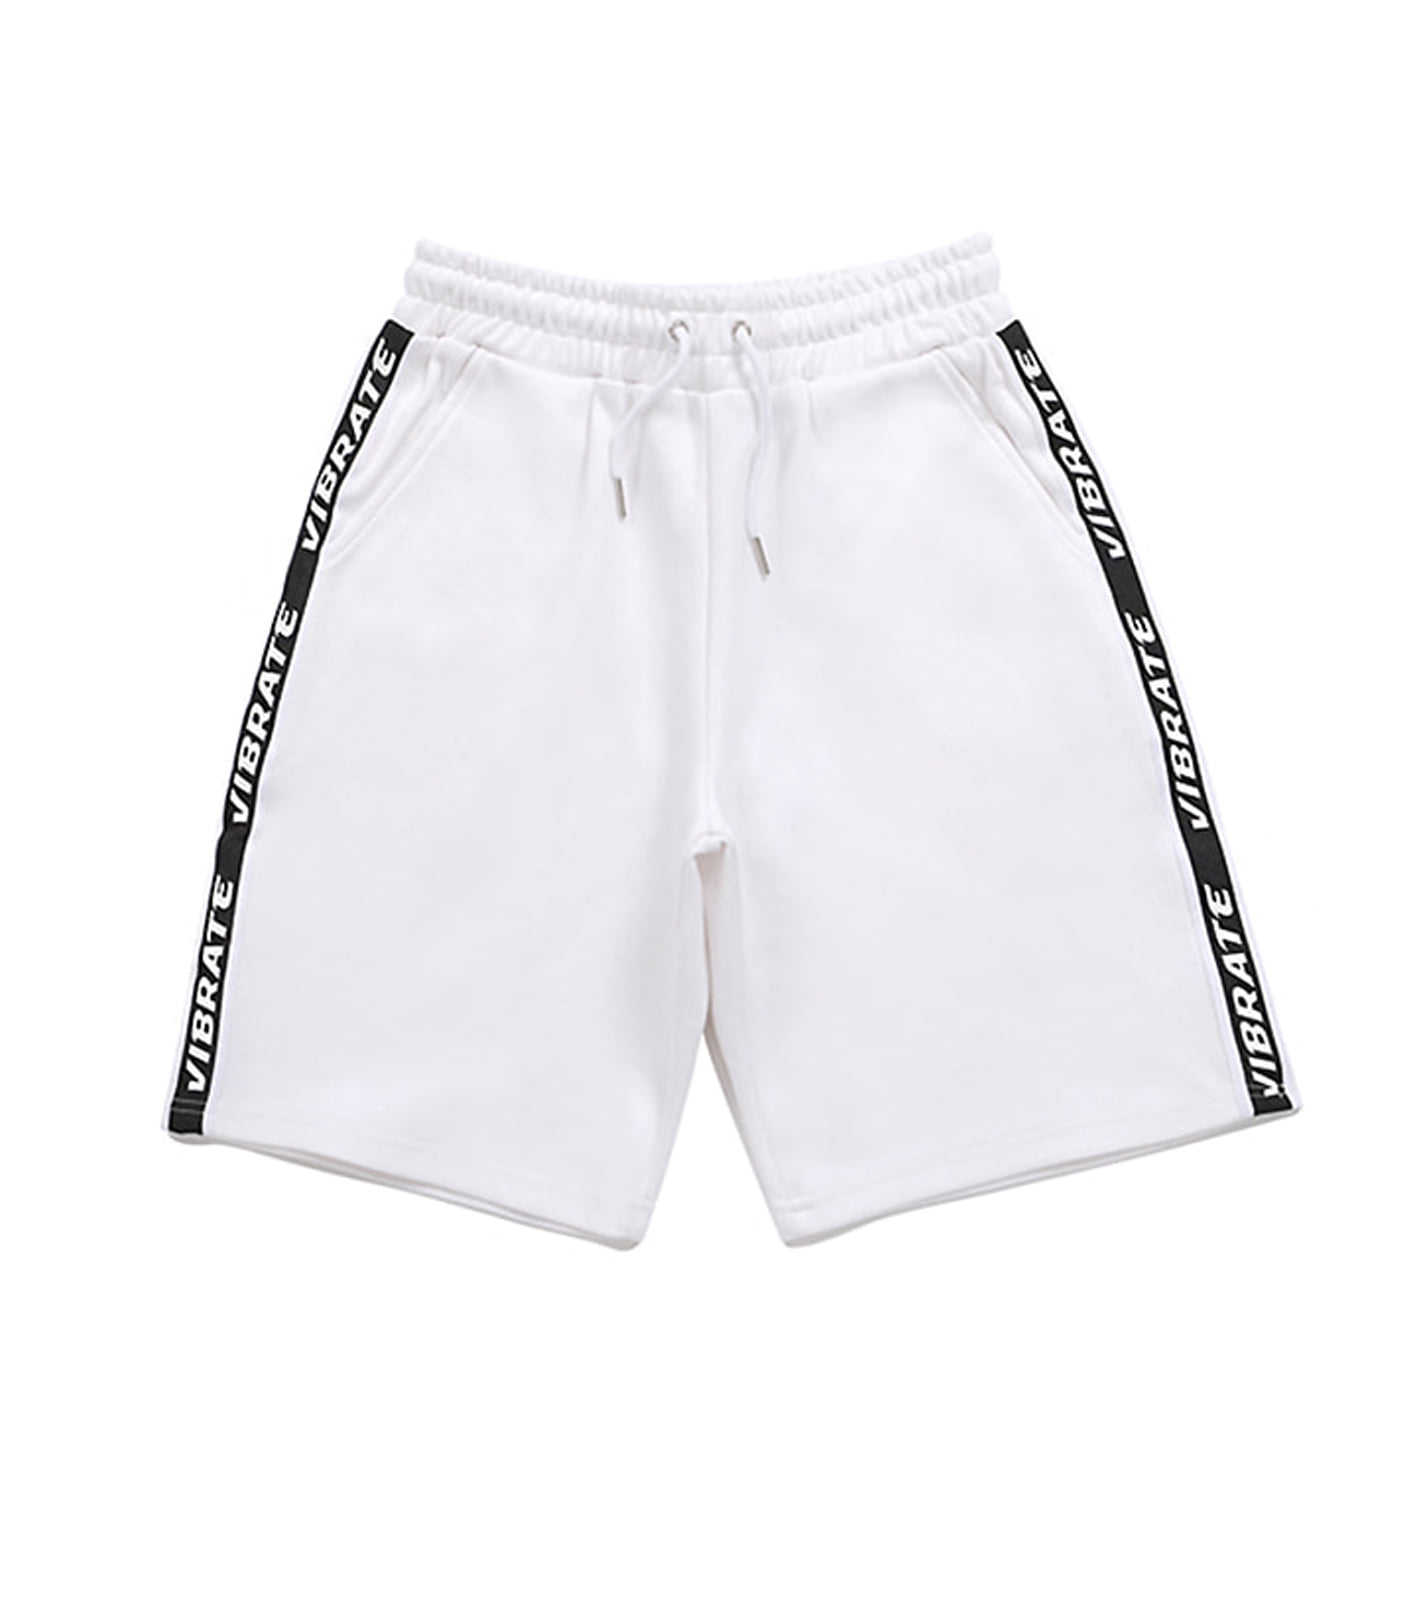 BASIC LOGO WEBBING TAPE SHORT PANTS (WHITE)